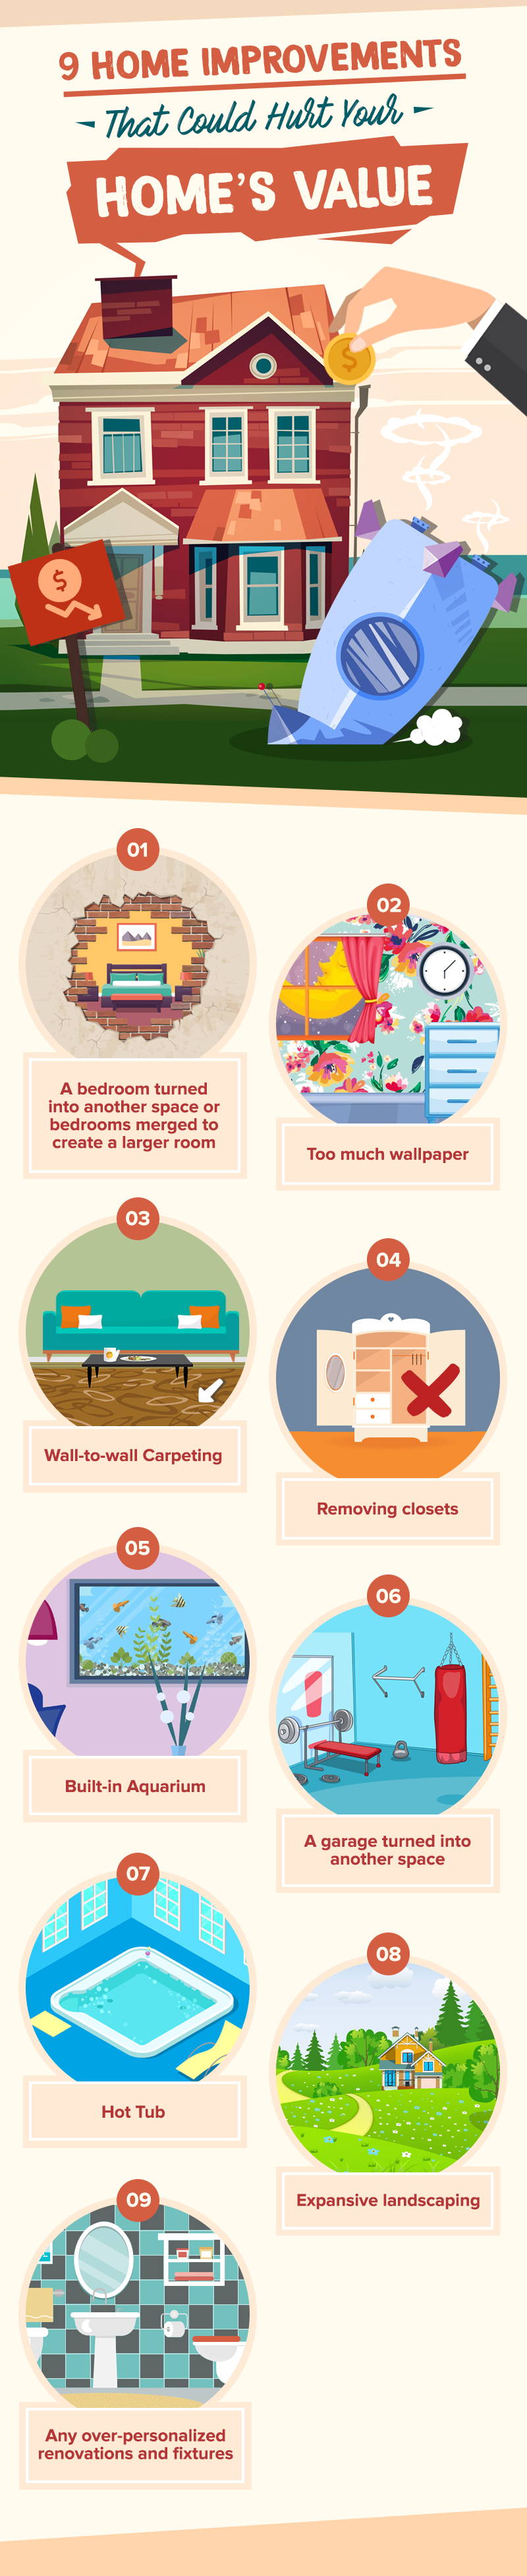 Home Improvements That Could Hurt A Home's Value infographics.jpg